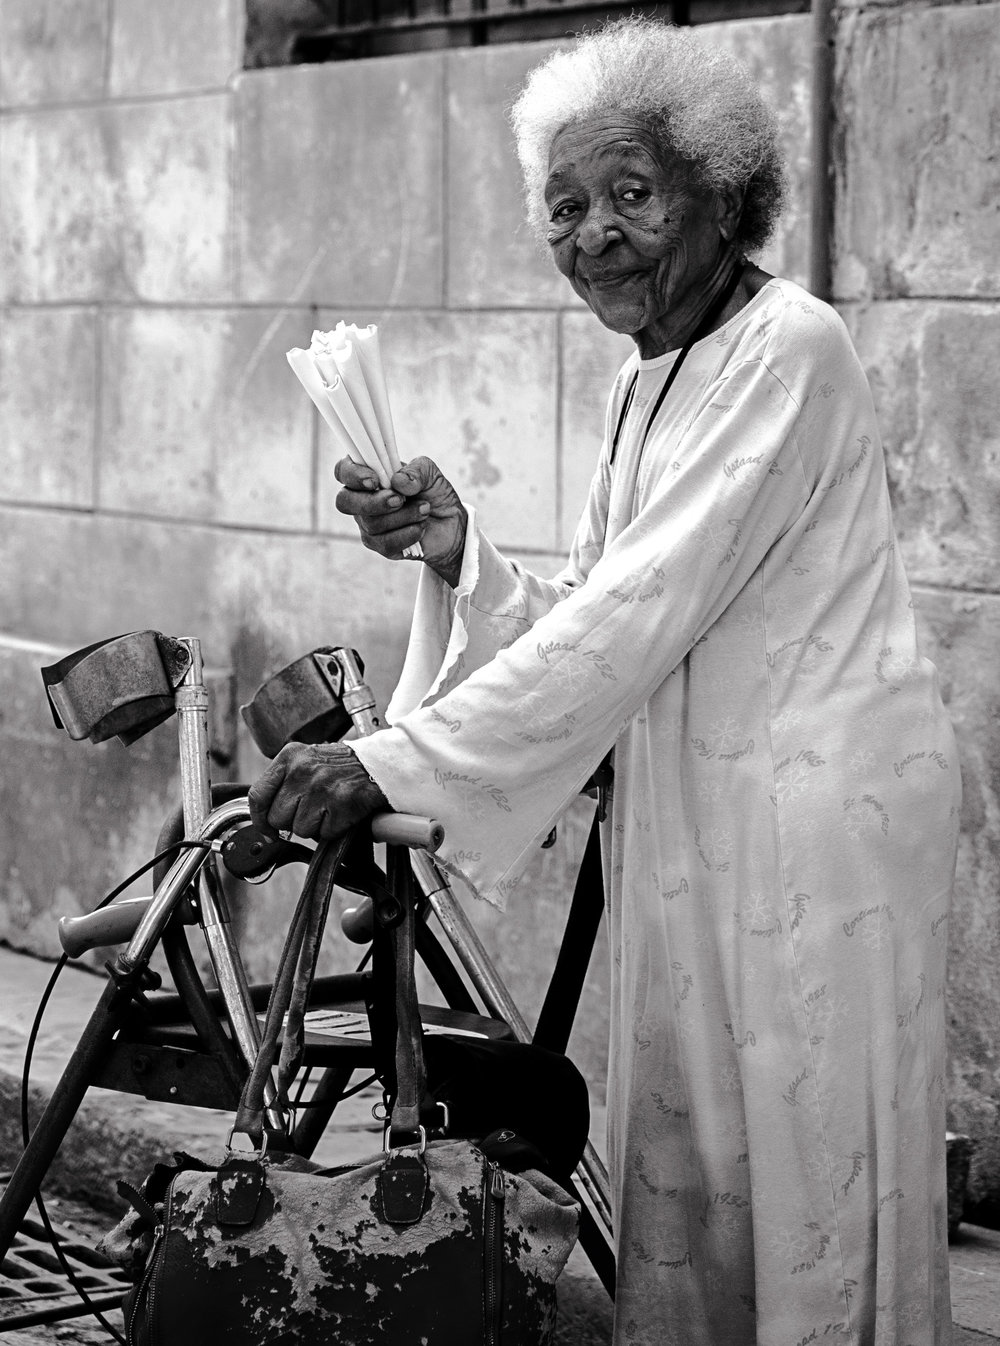 Peanut Seller - This picture reminds me of India. Similar to India, it is common to find street vendors selling all sorts of snacky type food in Cuba. Those paper cones contained salted and roasted peanuts. Boy... were they delicious!